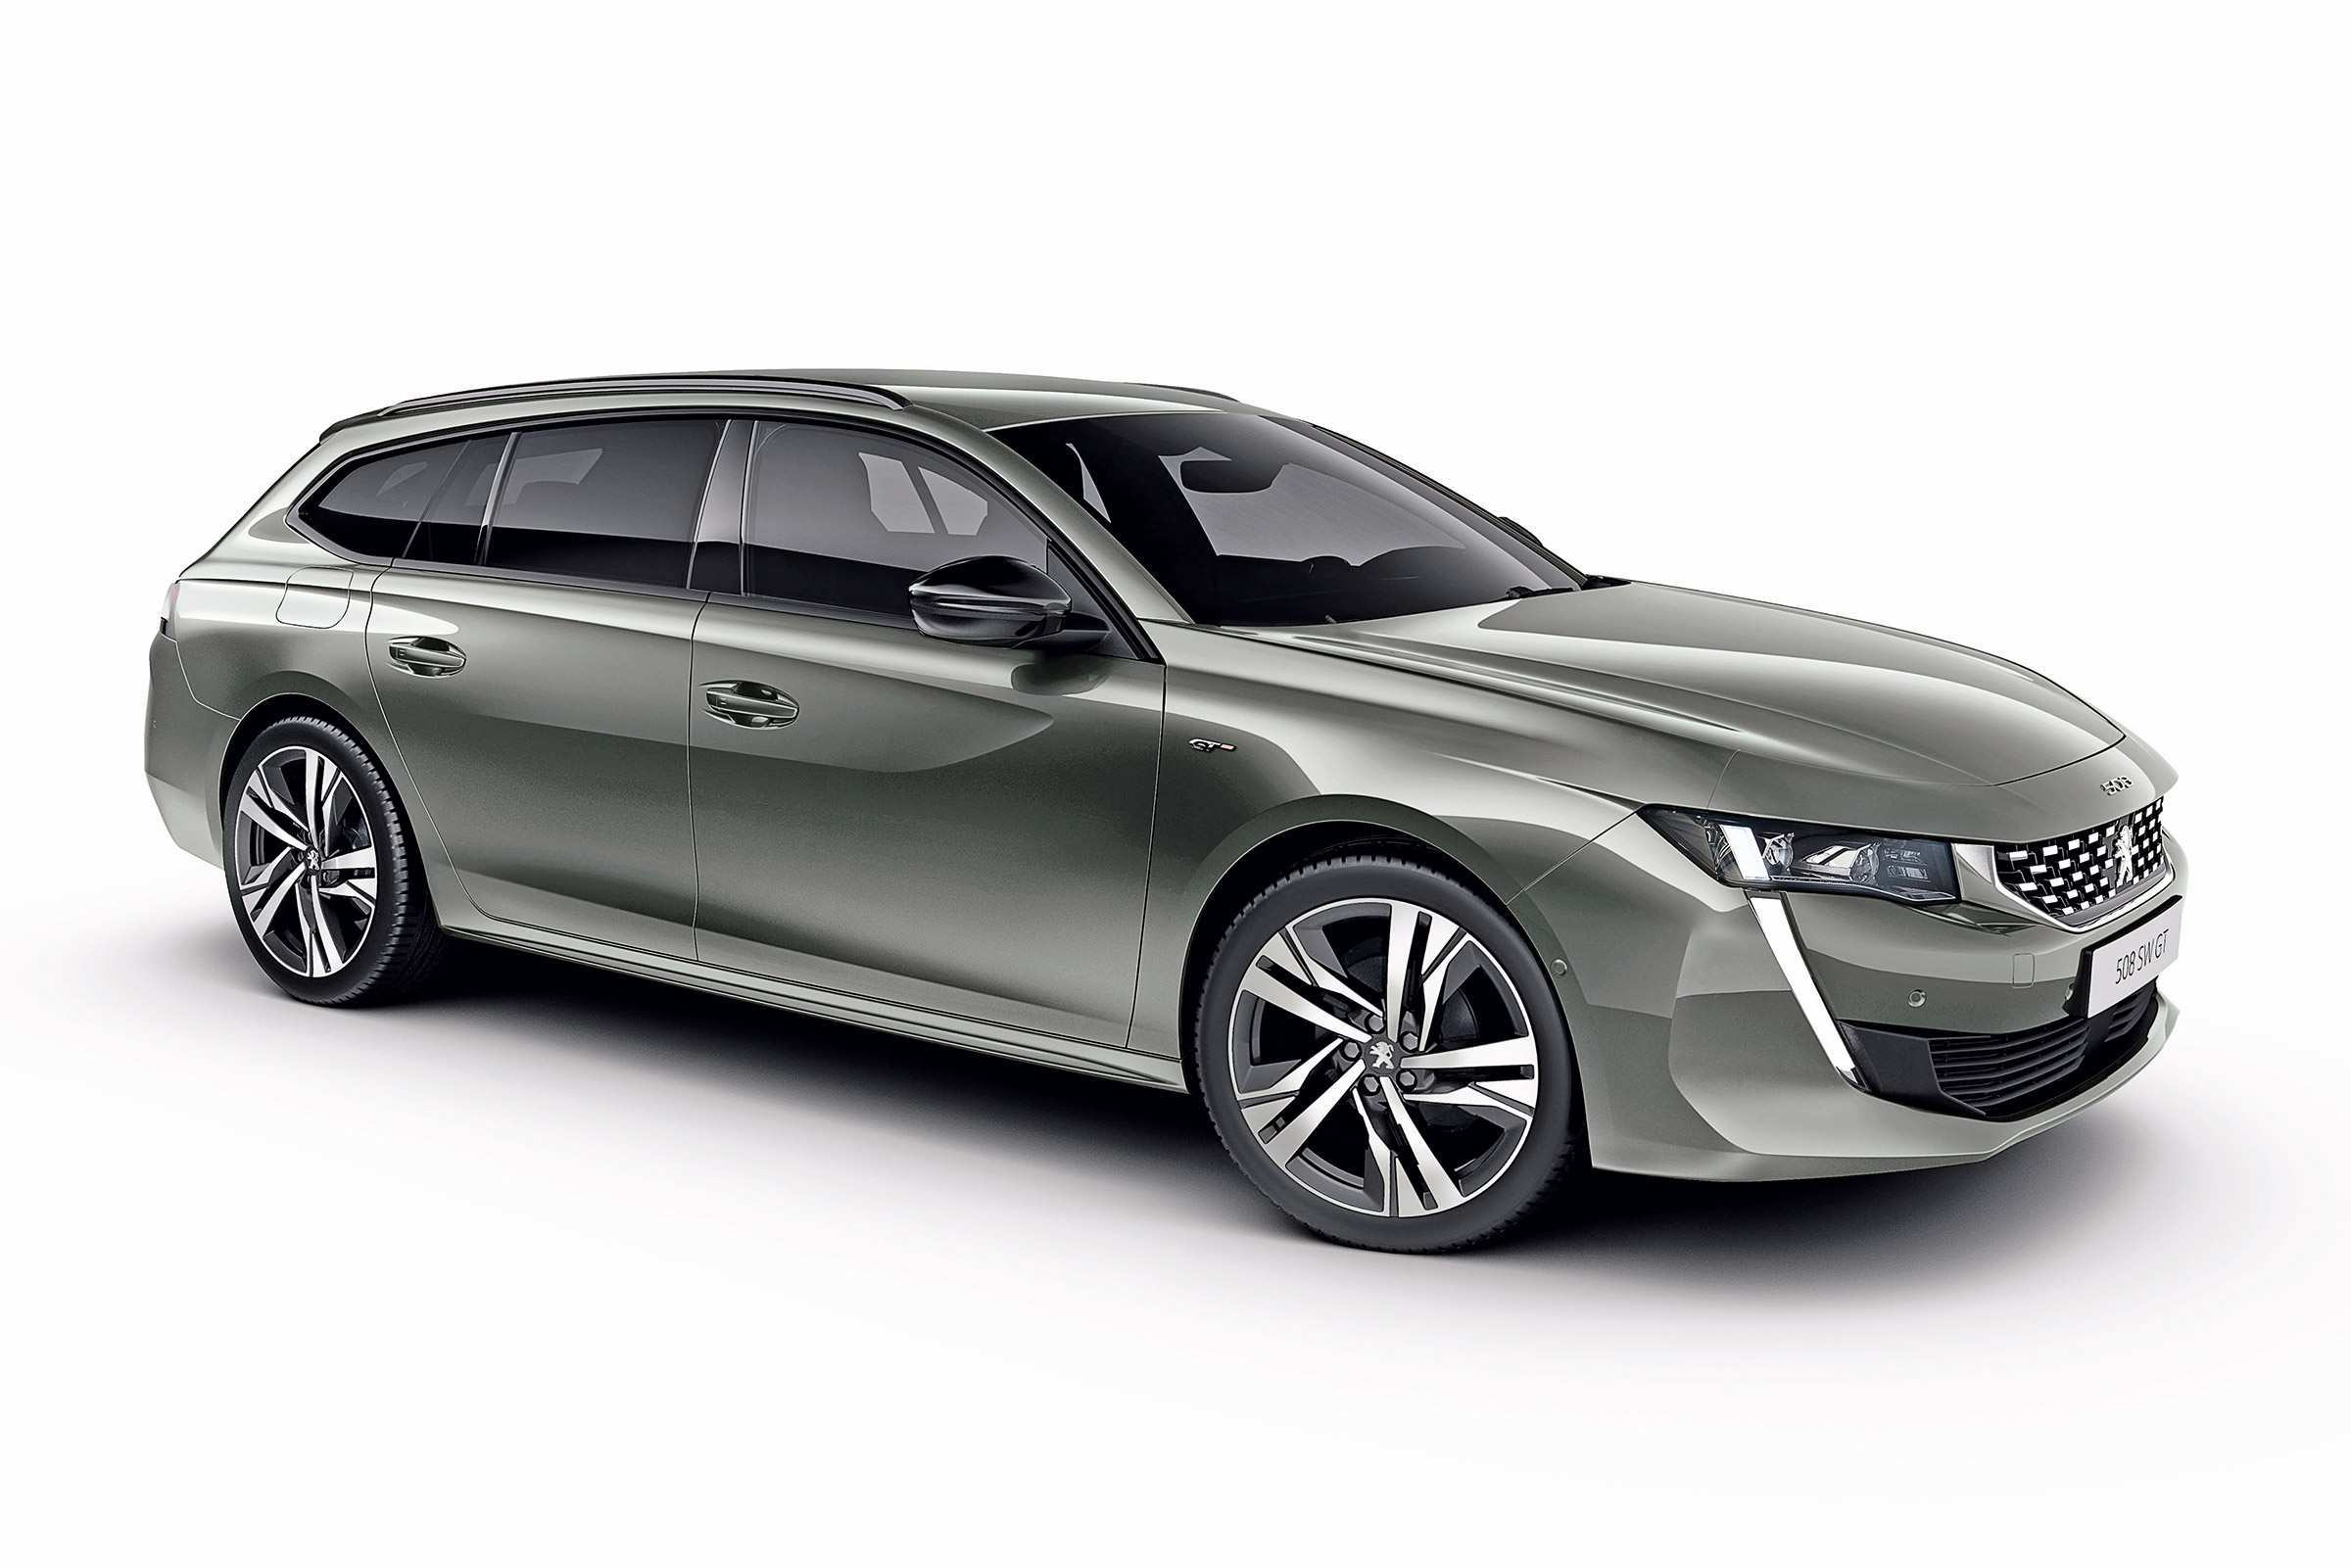 95 Concept of 2019 Peugeot 508 Sw Prices with 2019 Peugeot 508 Sw